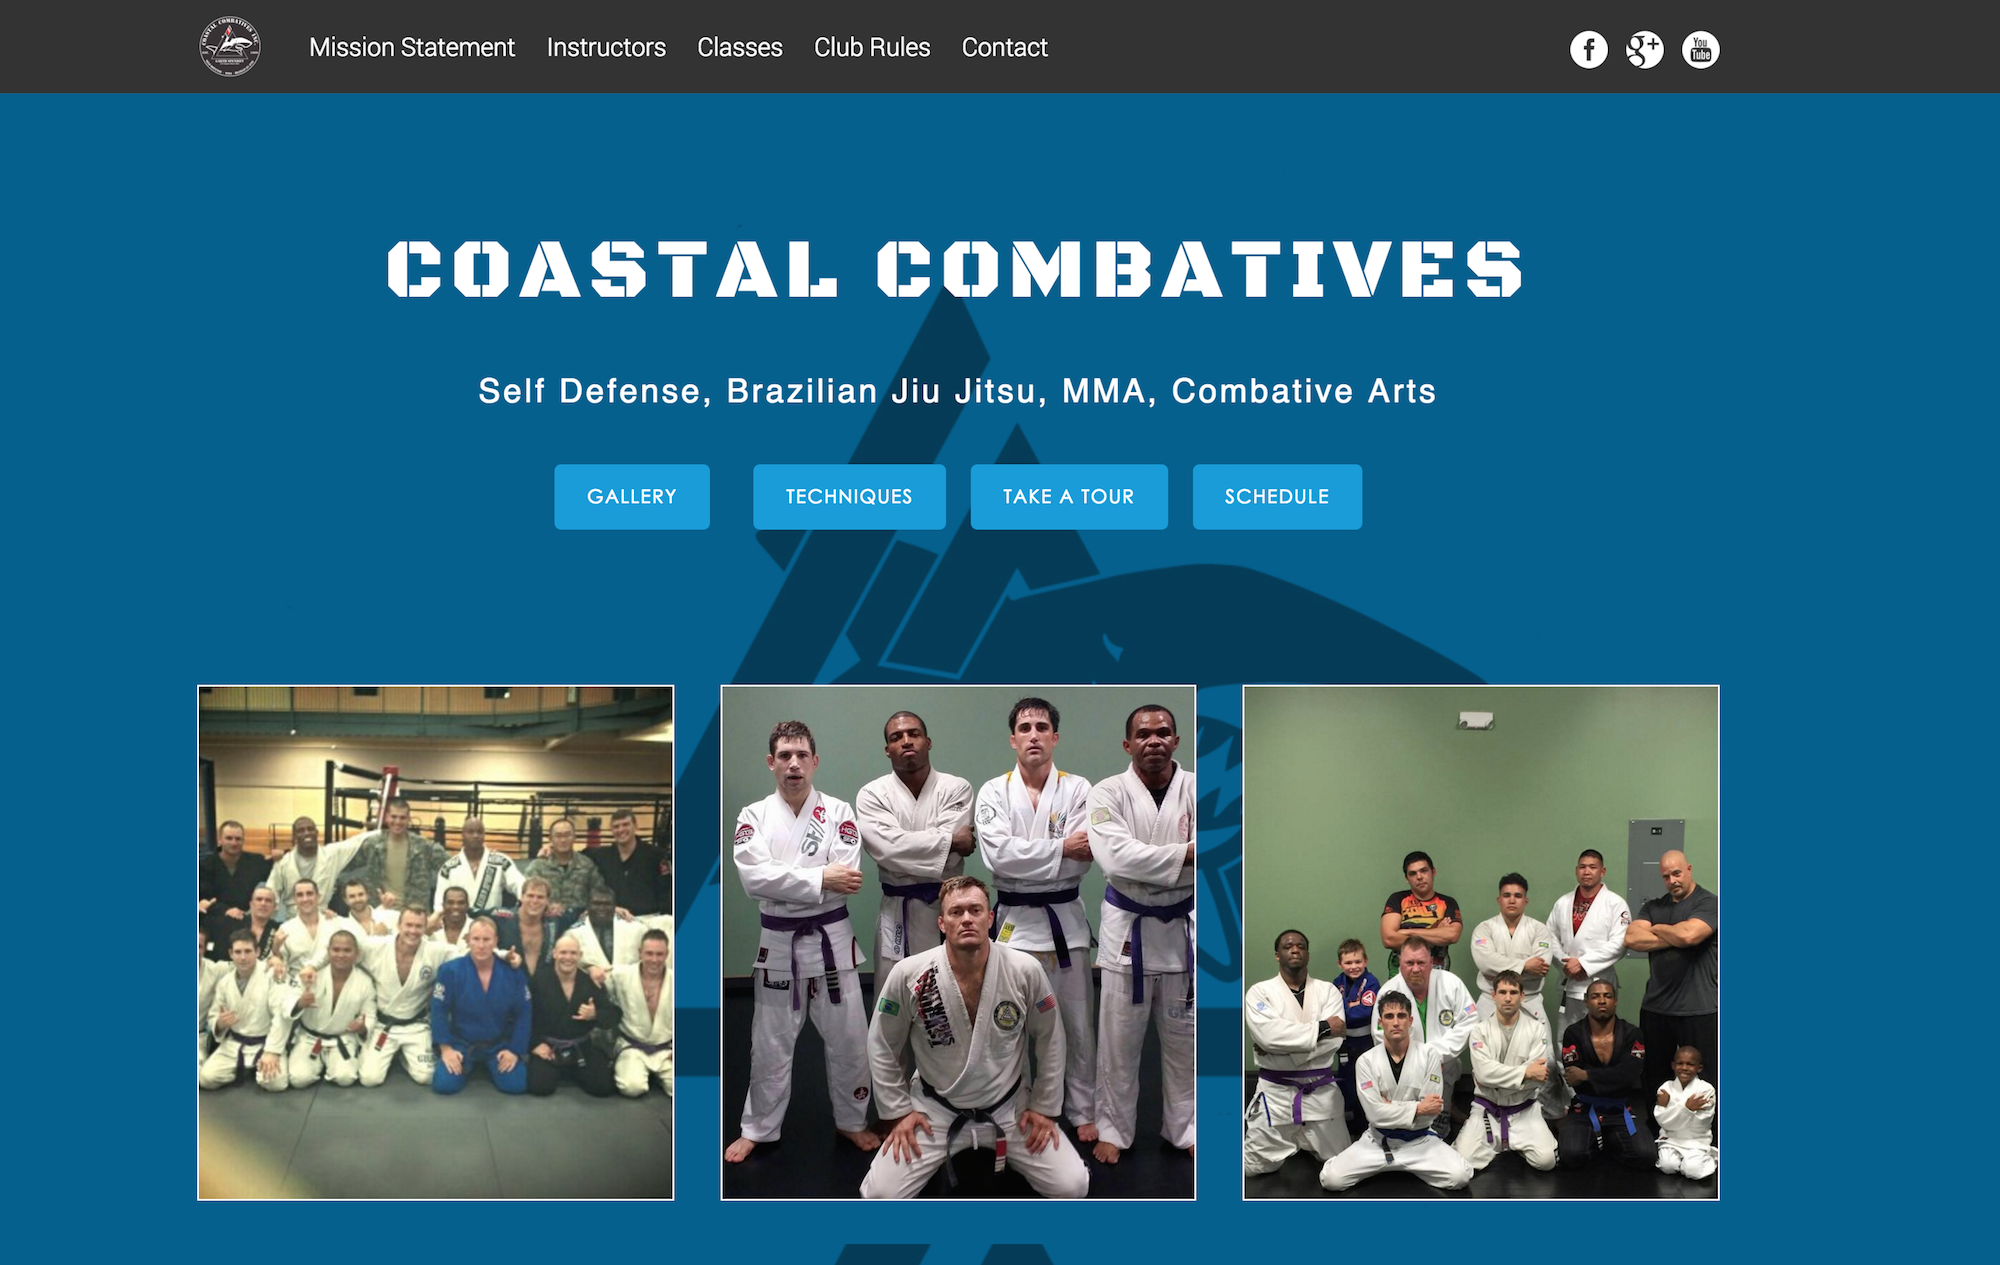 Coastal Combatives – Coastal Combatives